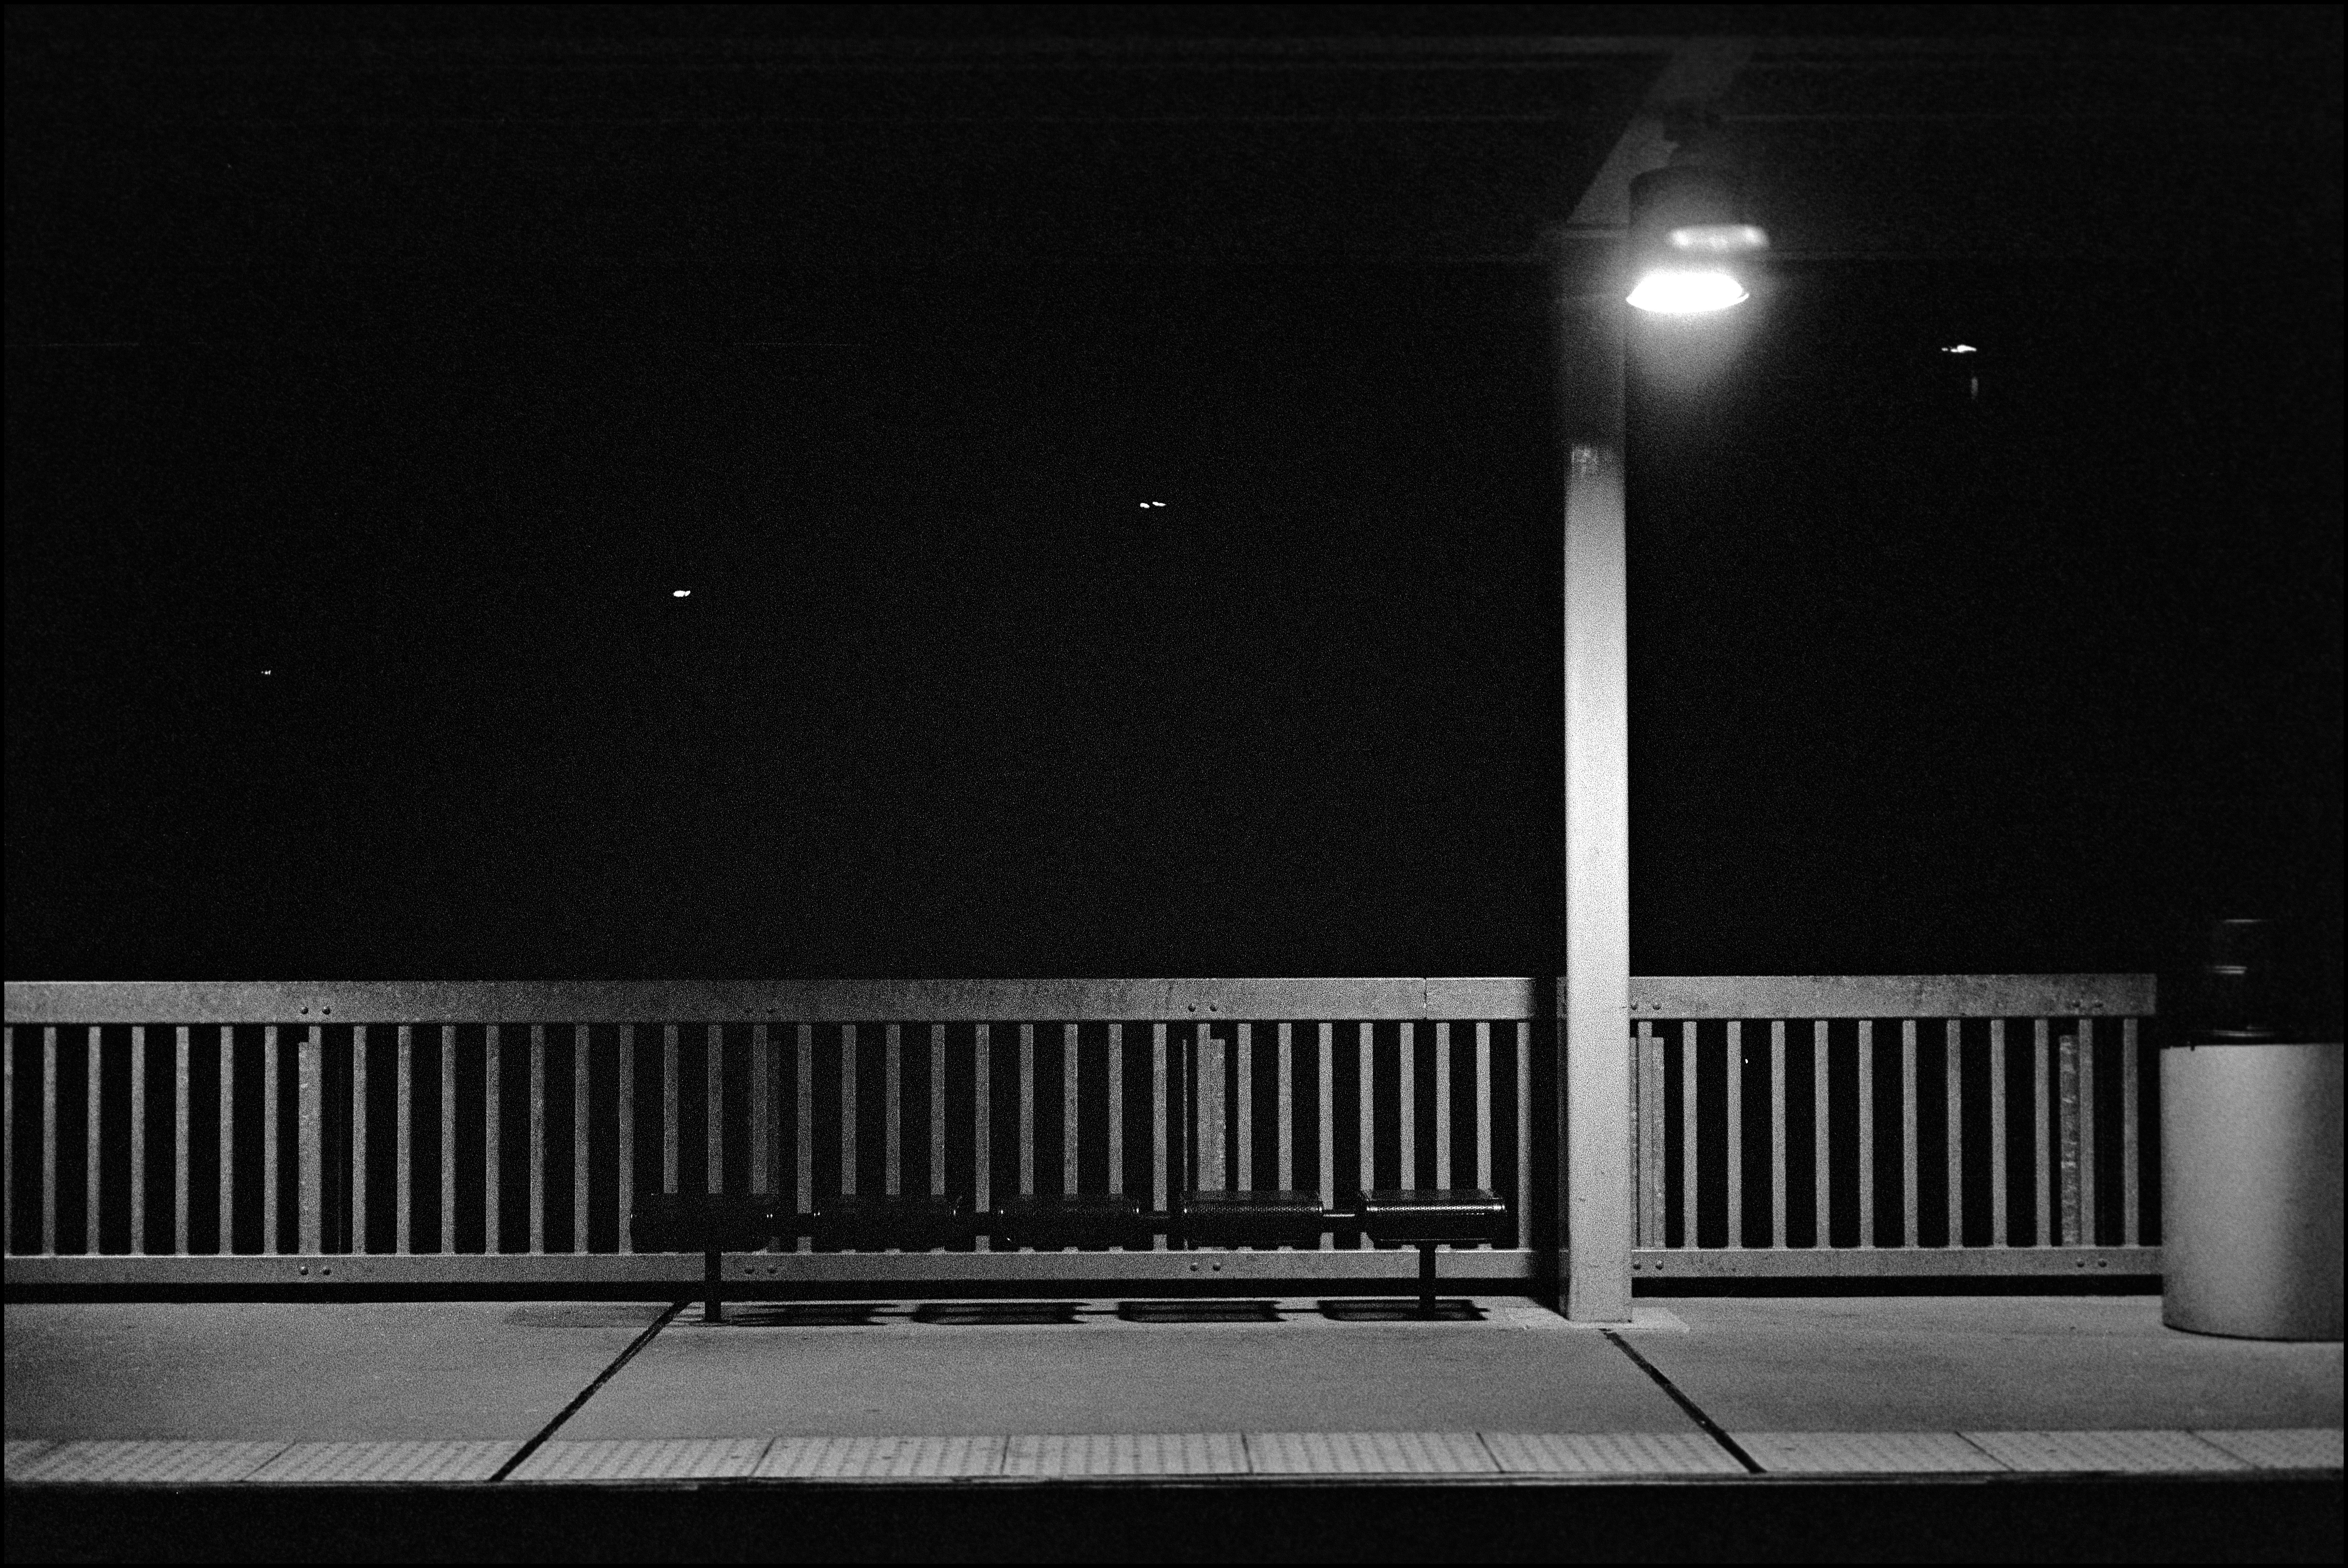 station stop, somewhere in delaware